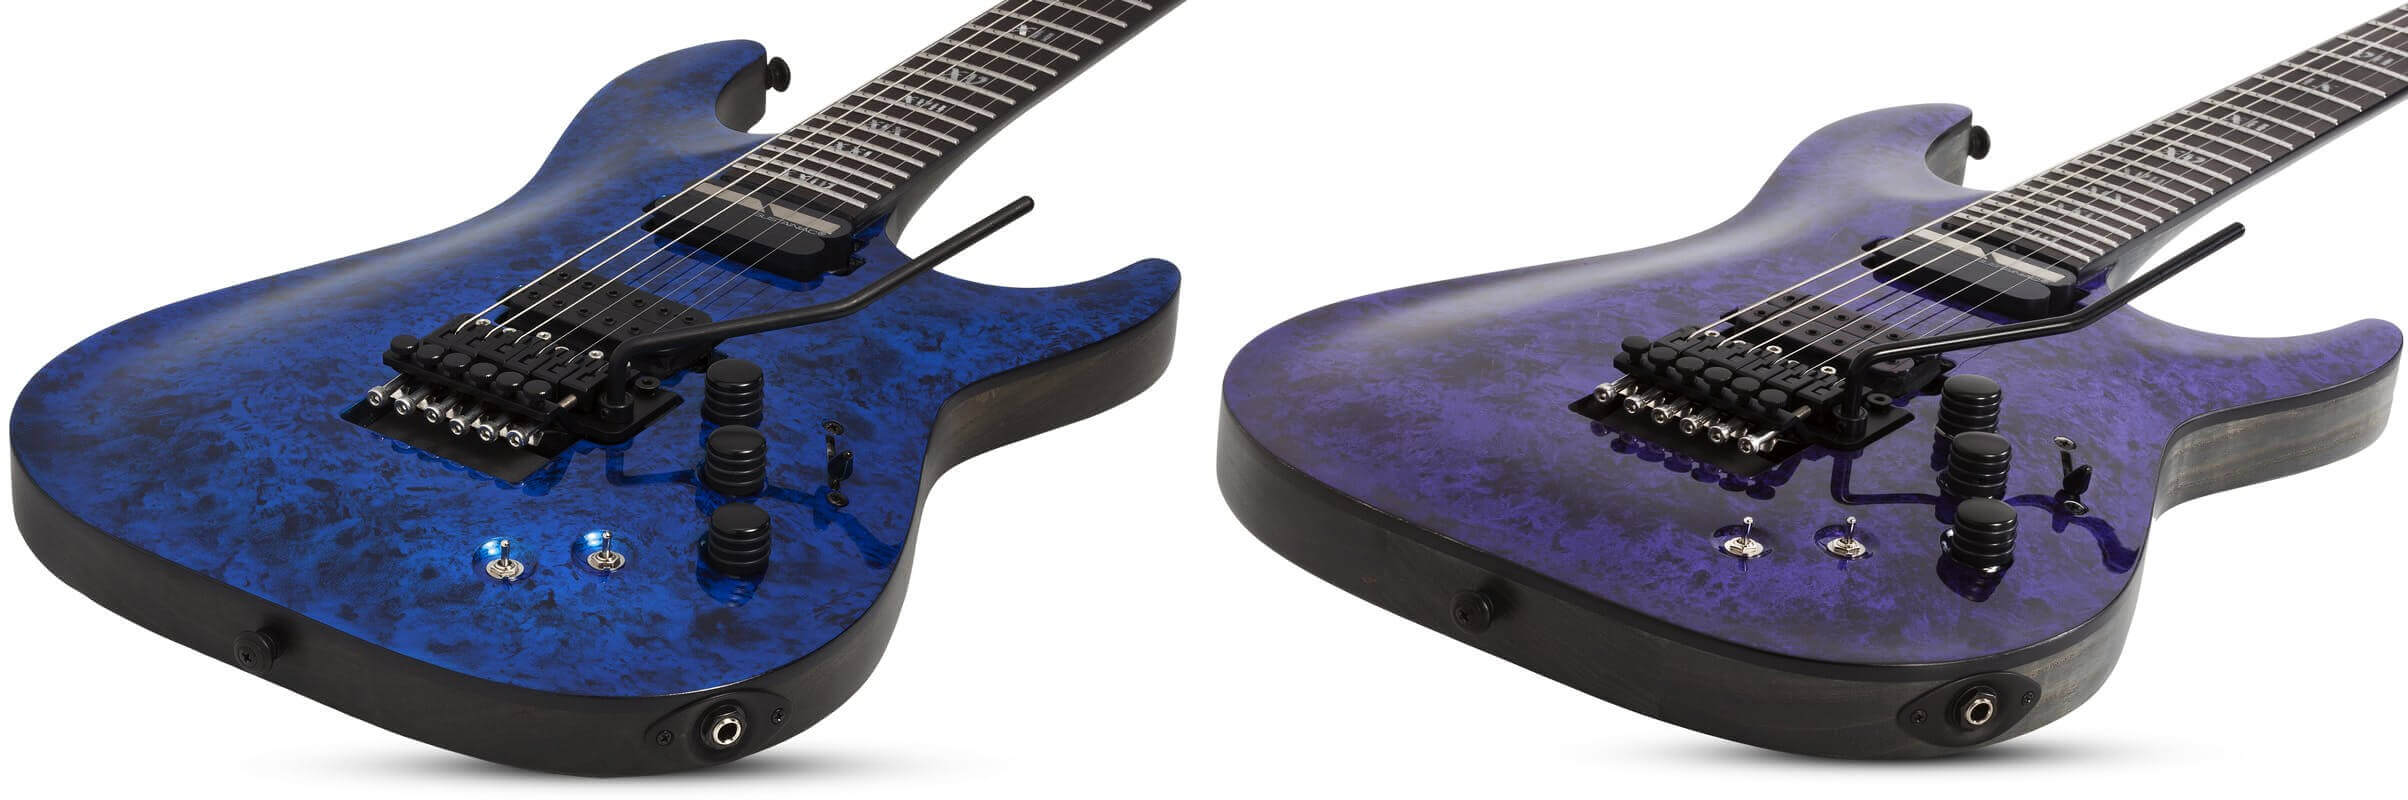 Schecter Blue & Purple Reign finishes